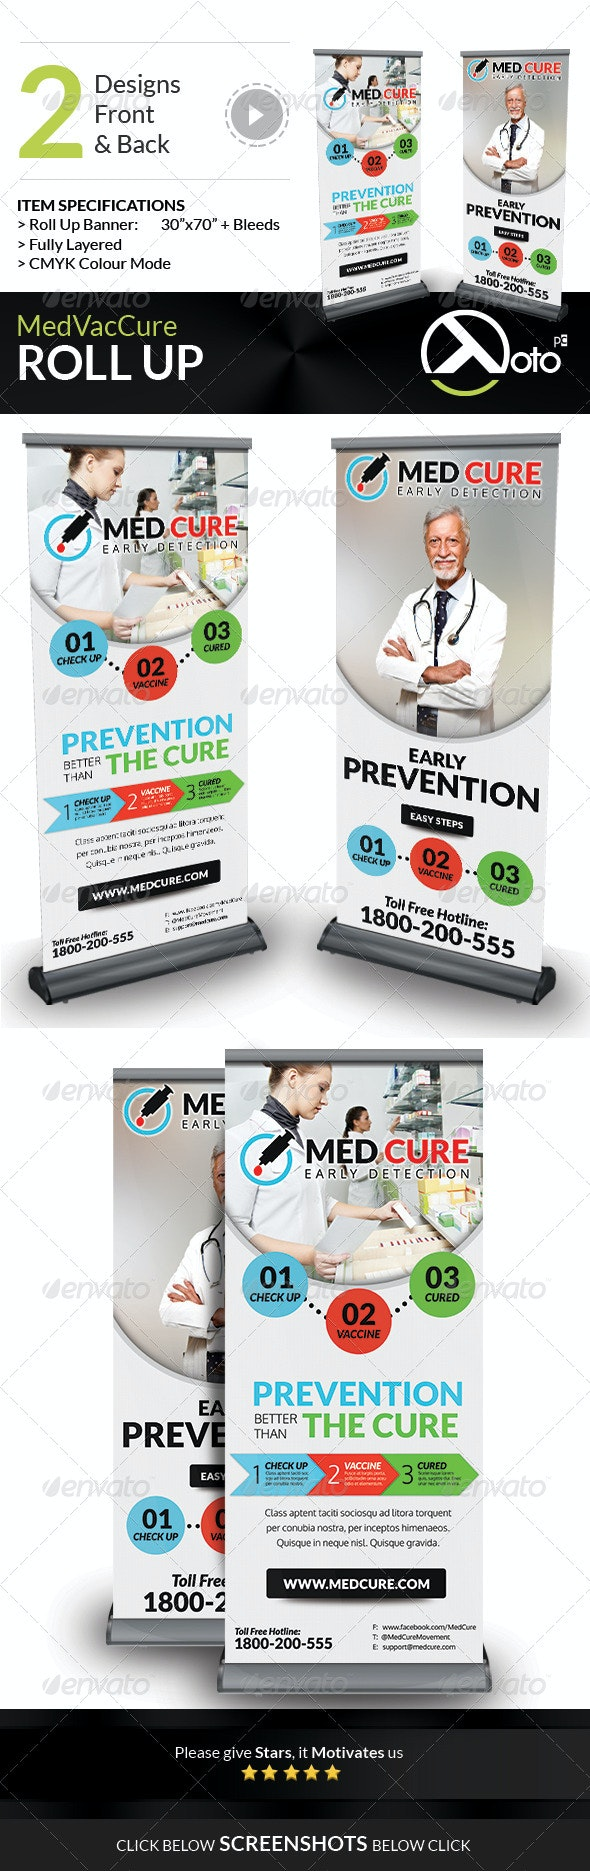 Med Vac Cure Health Care Roll Up Banners